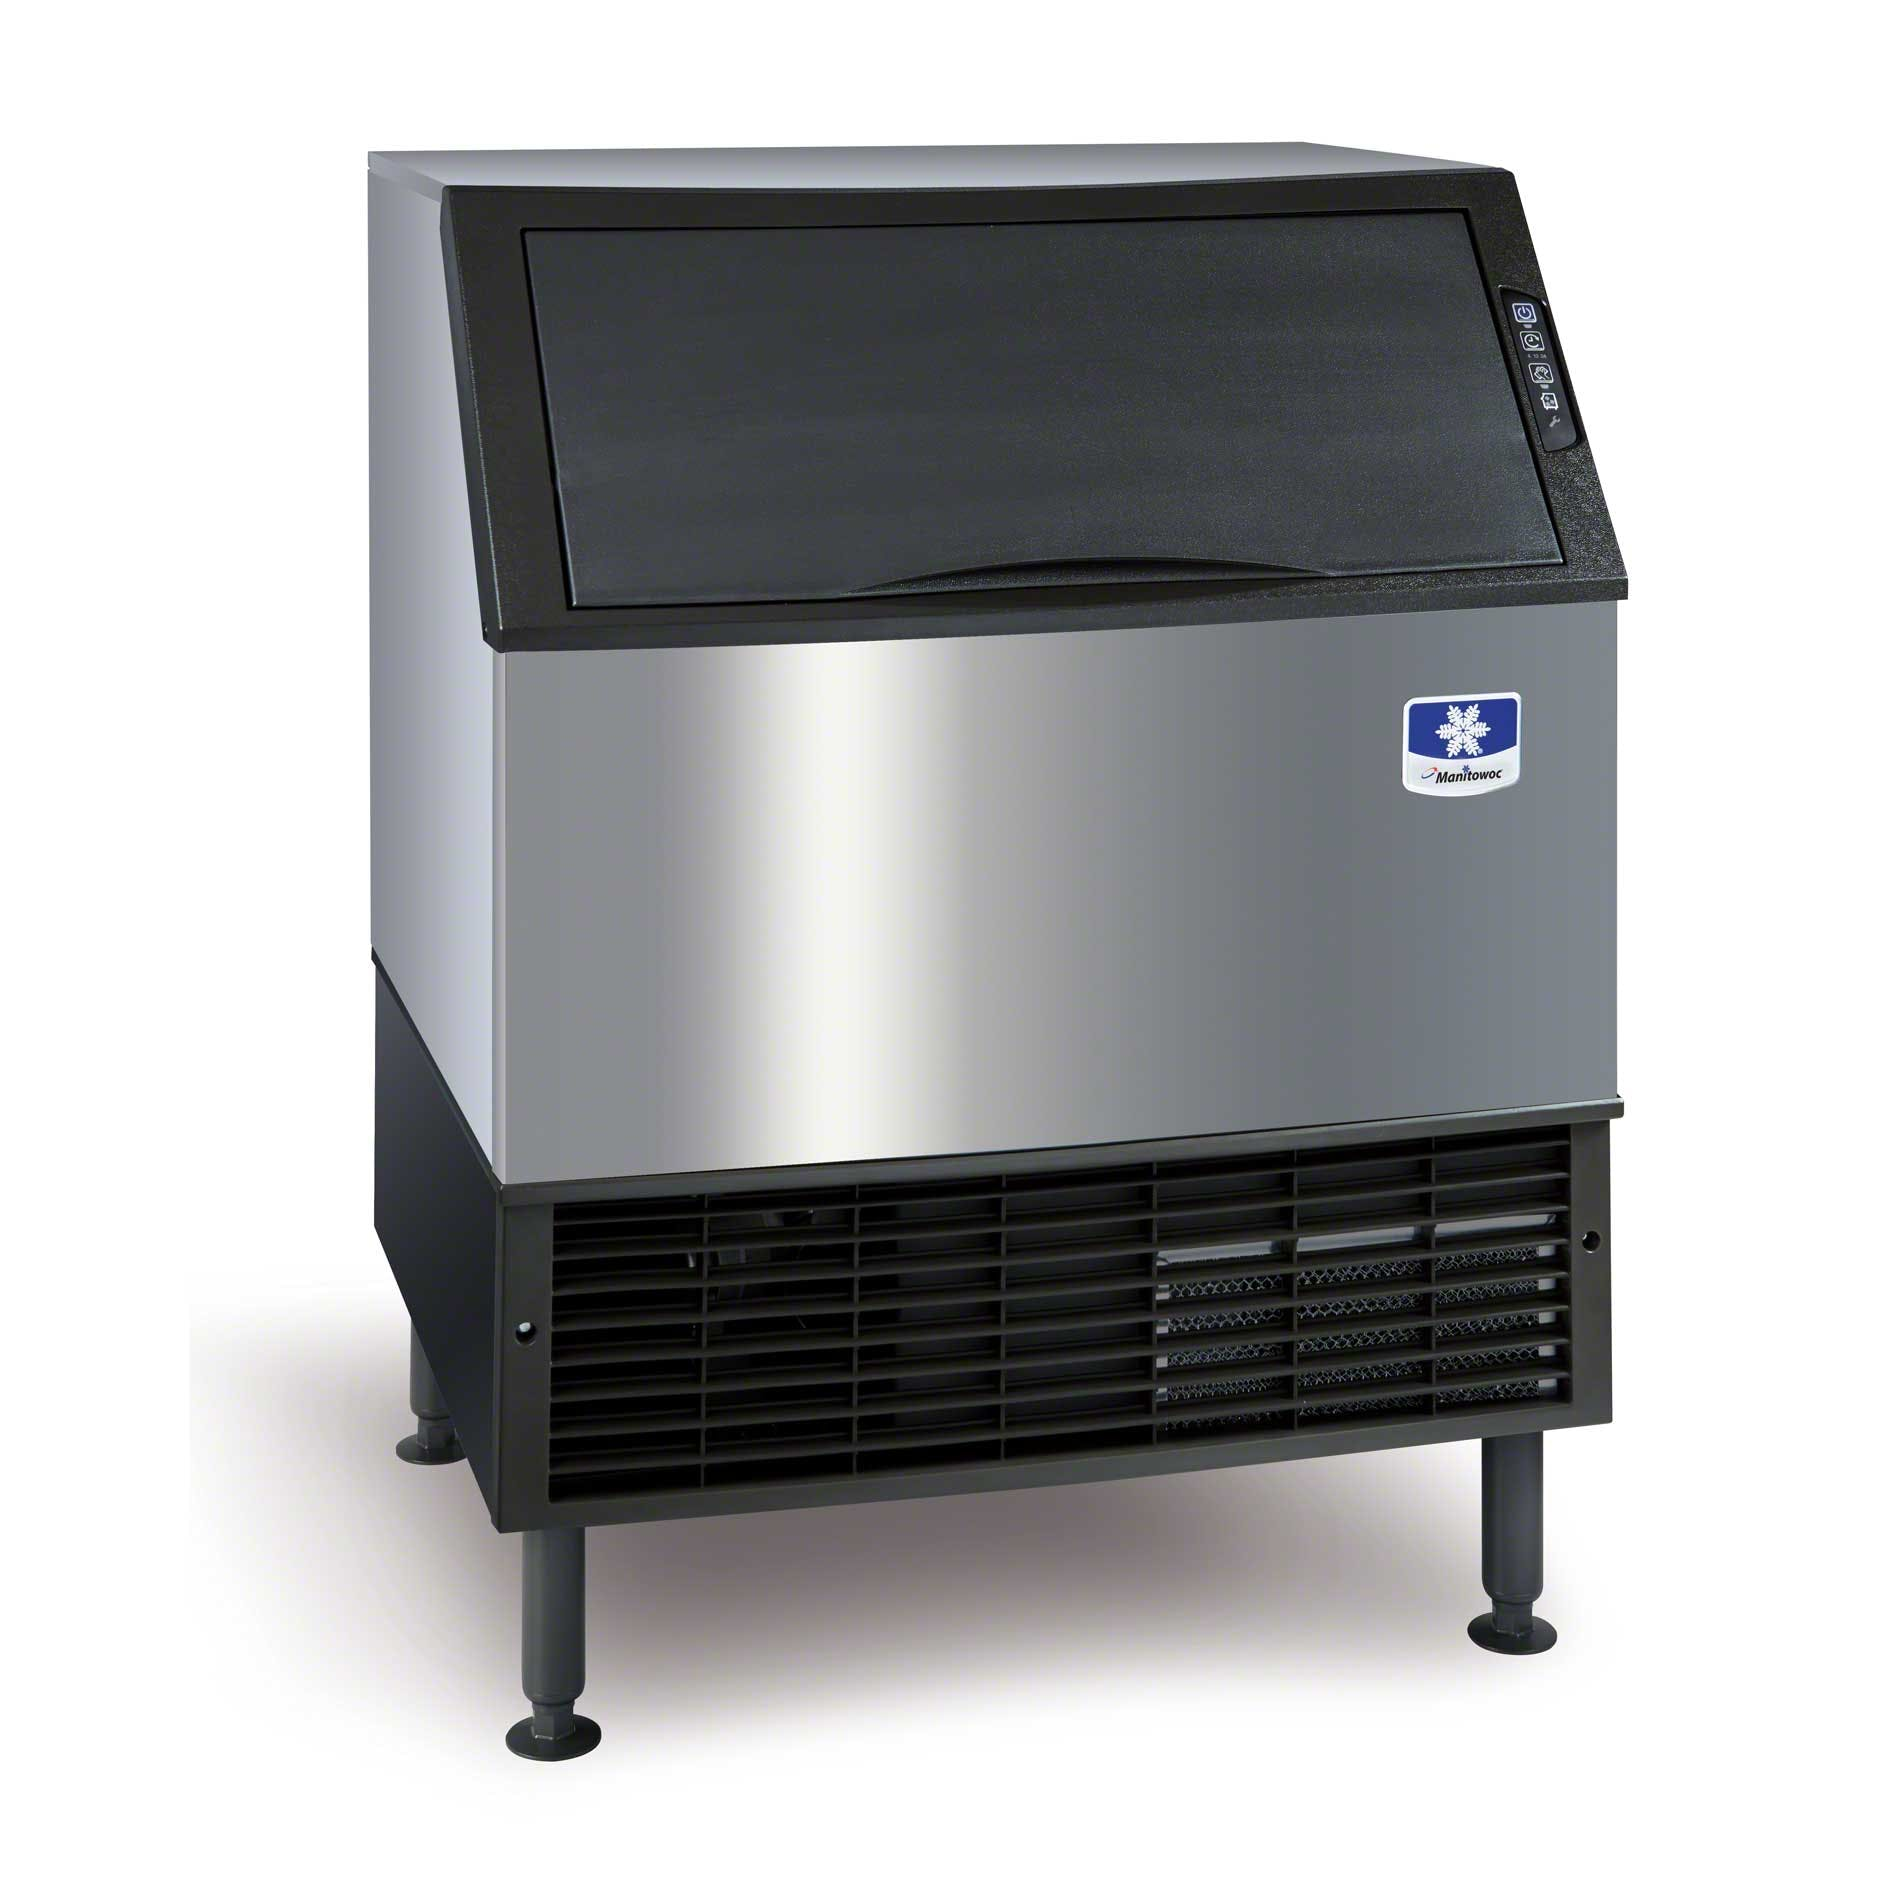 Manitowoc - UD-0310A 304 lb Cube Undercounter Ice Machine - U-310 Neo Series Ice machine sold by Food Service Warehouse